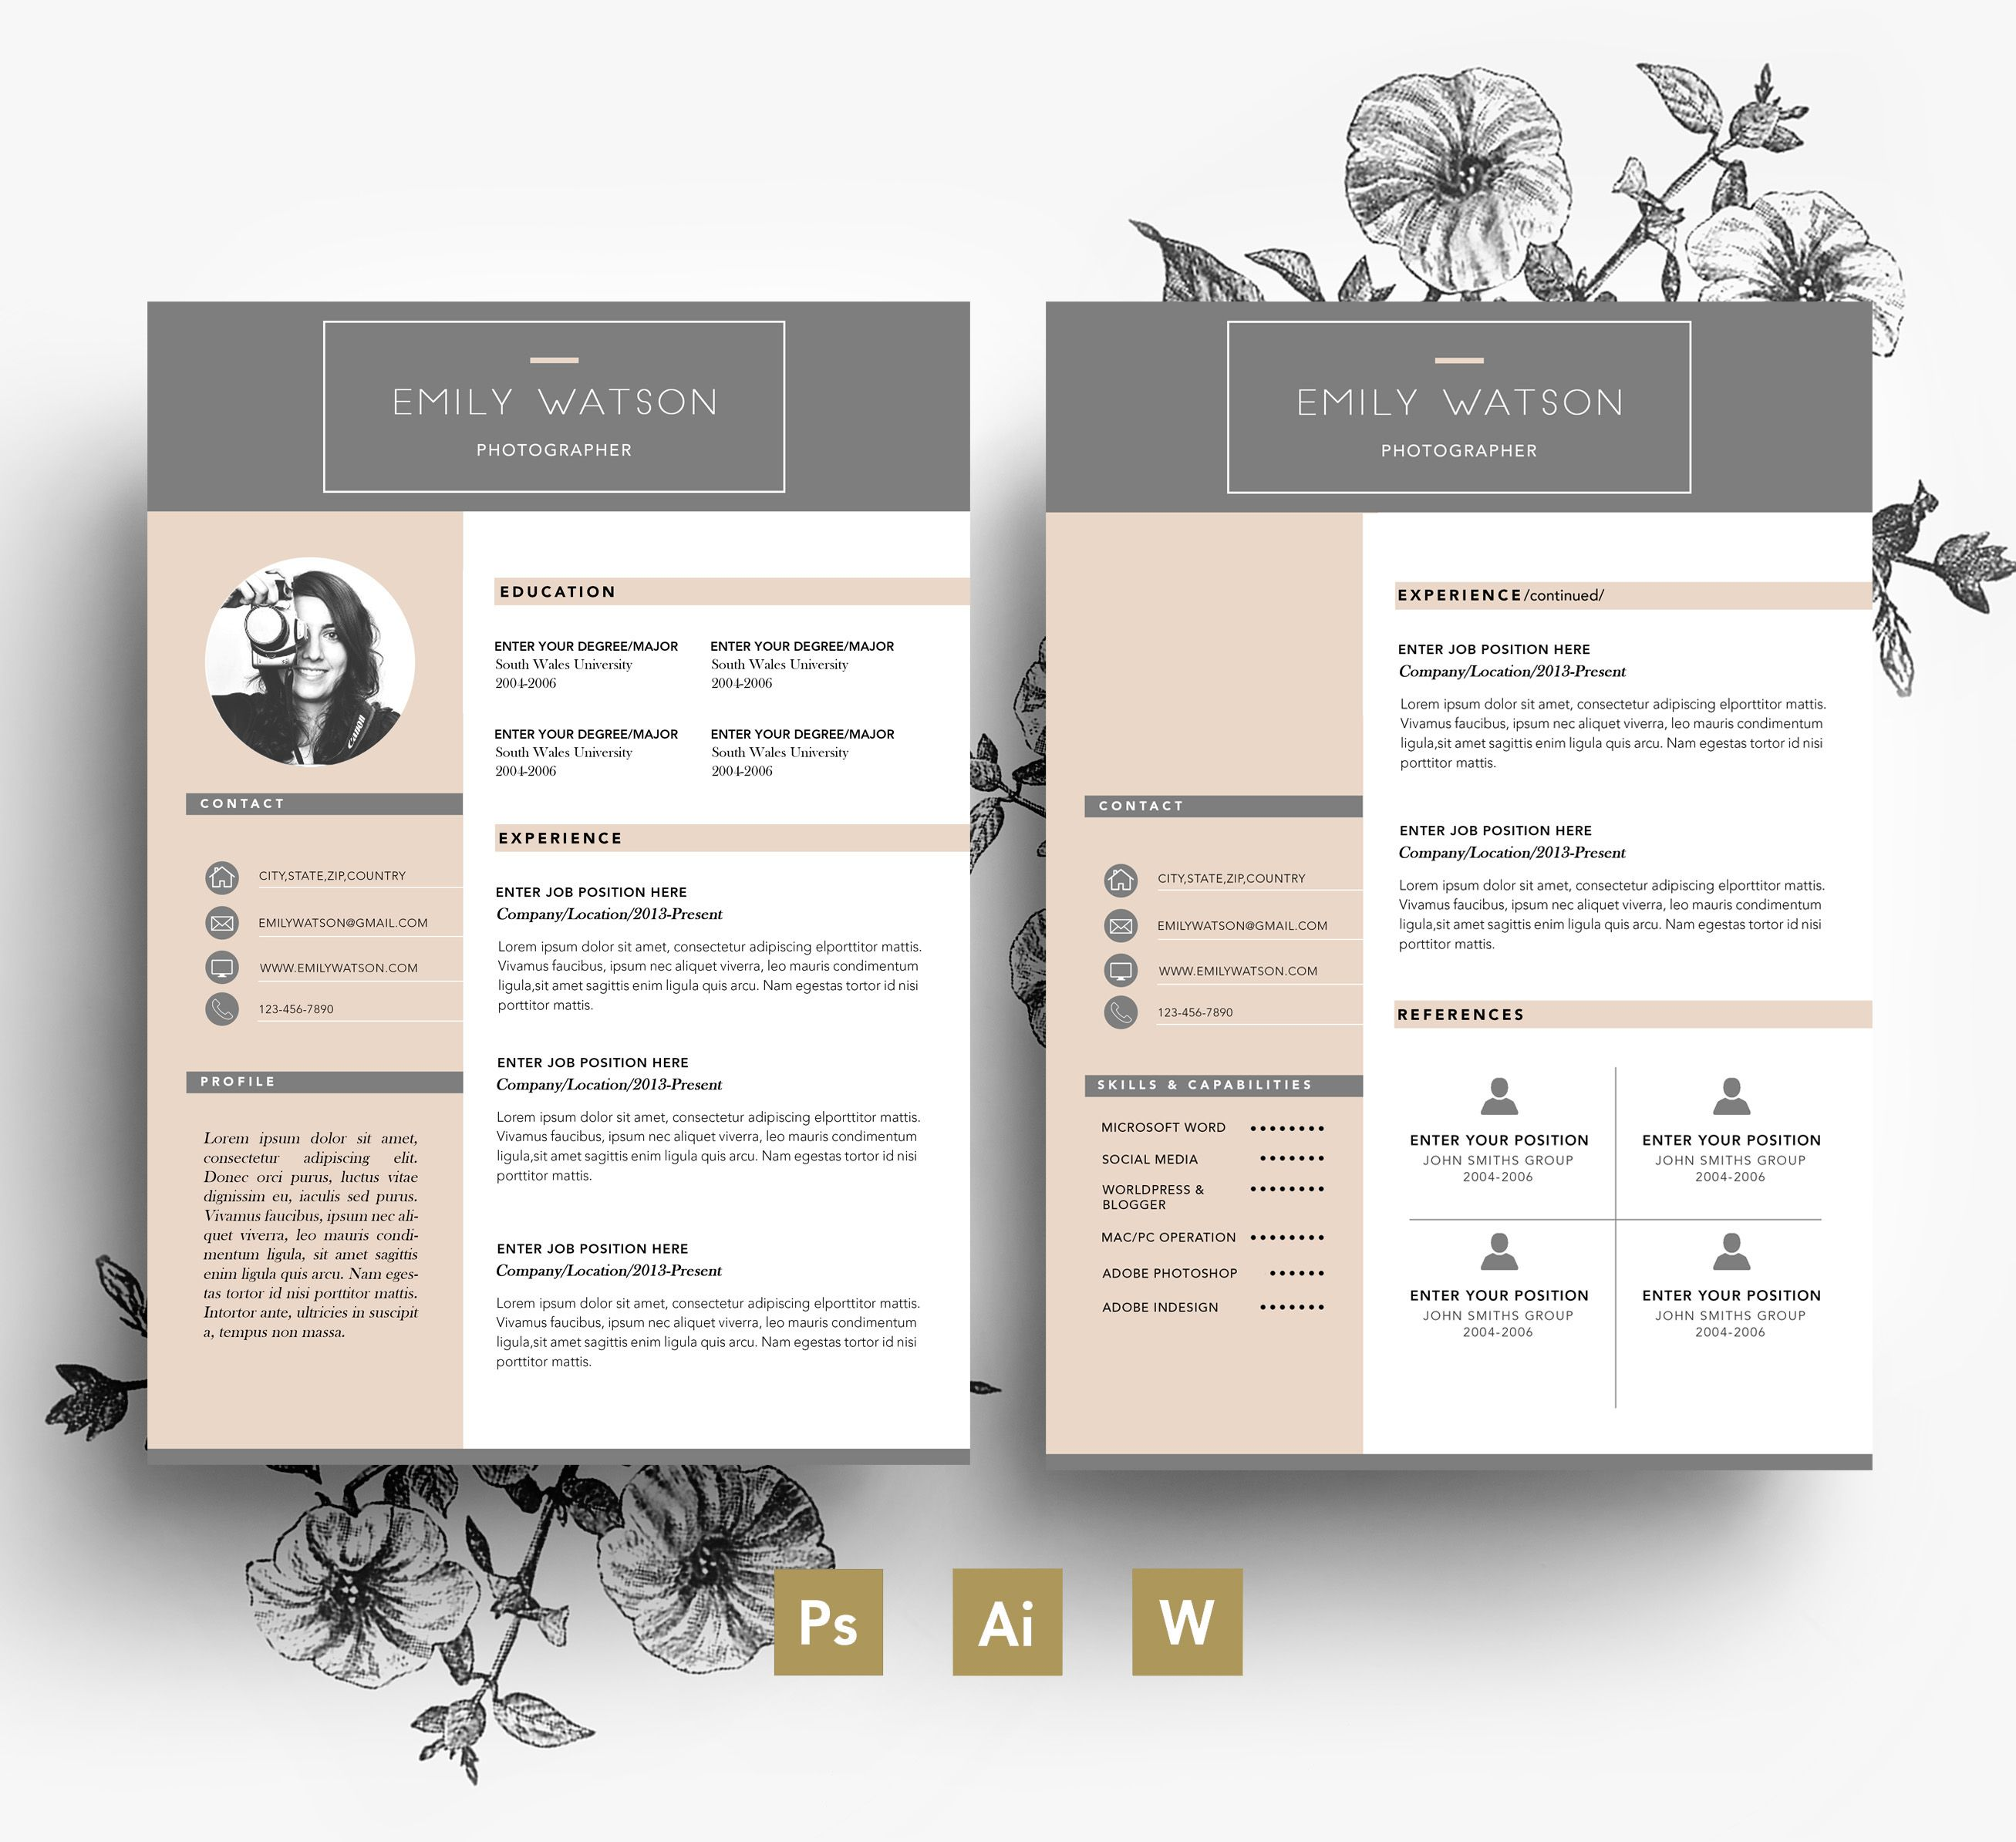 Magnificent 10 Steps To Creating A Resume Small 10 Words To Put On Your Resume Square 100 Greatest Resume Words 100 Resume Words Youthful 10x10 Grid Template Dark12 Tab Divider Template 2 Page Resume Template ~ Mdxar